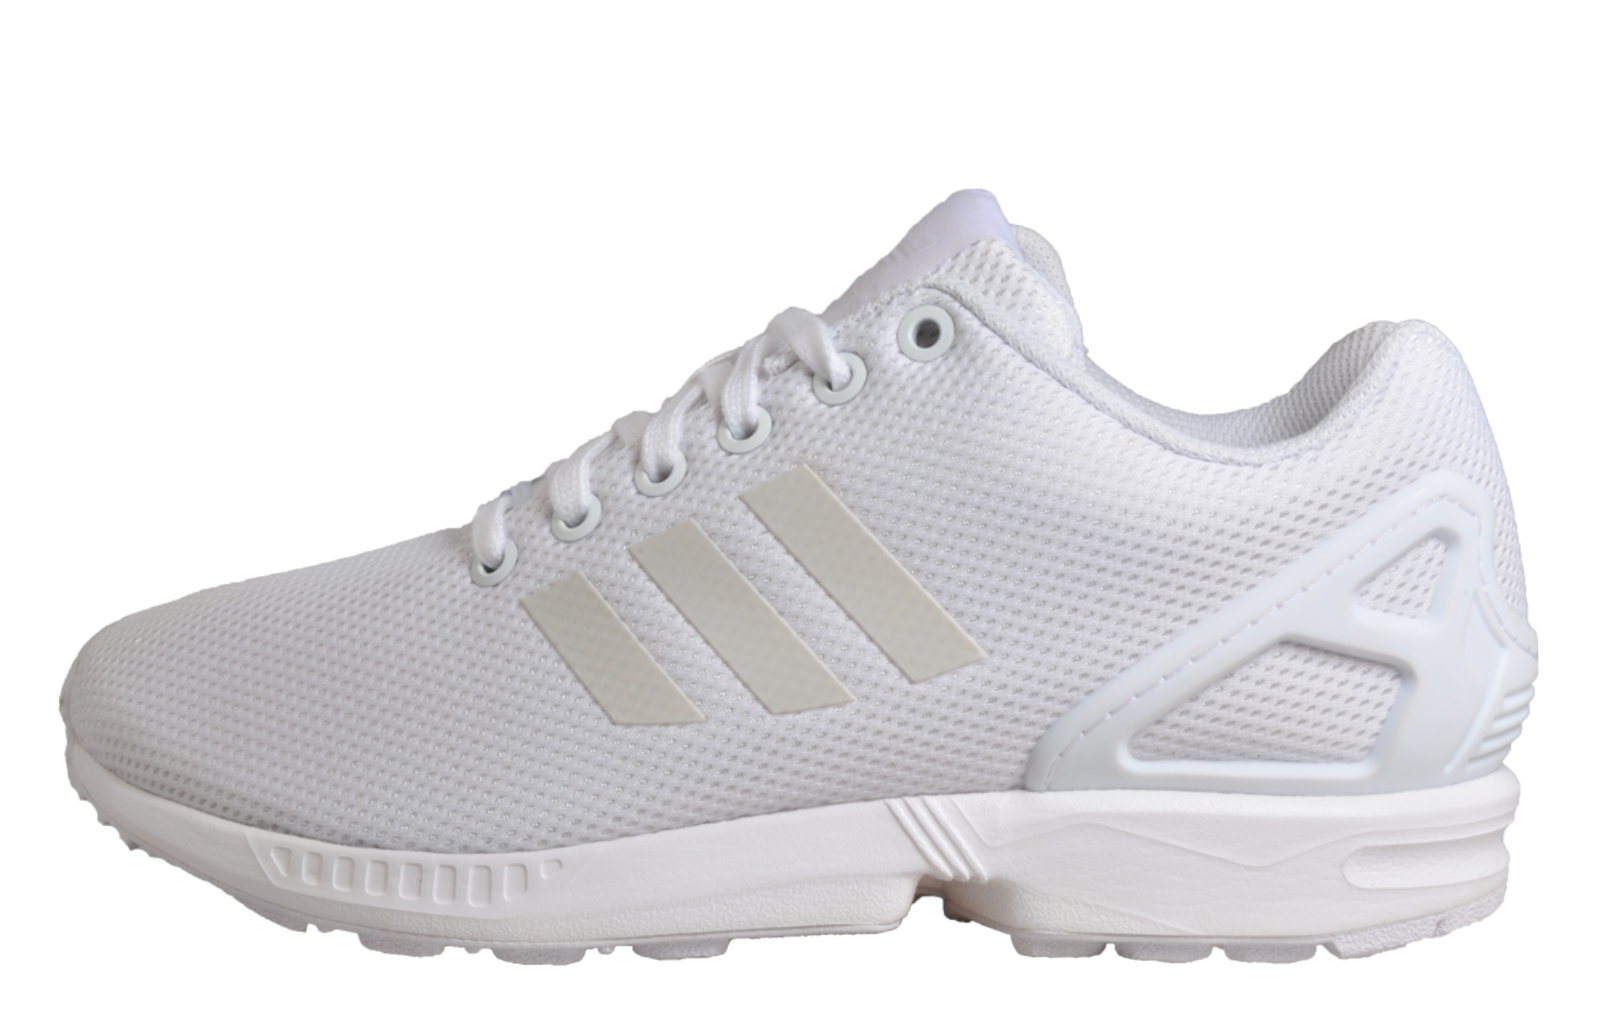 6dc4ac8af9376 ... netherlands adidas originals zx flux uni classic casual retro trainers  white uk 4 only 218c6 a6105